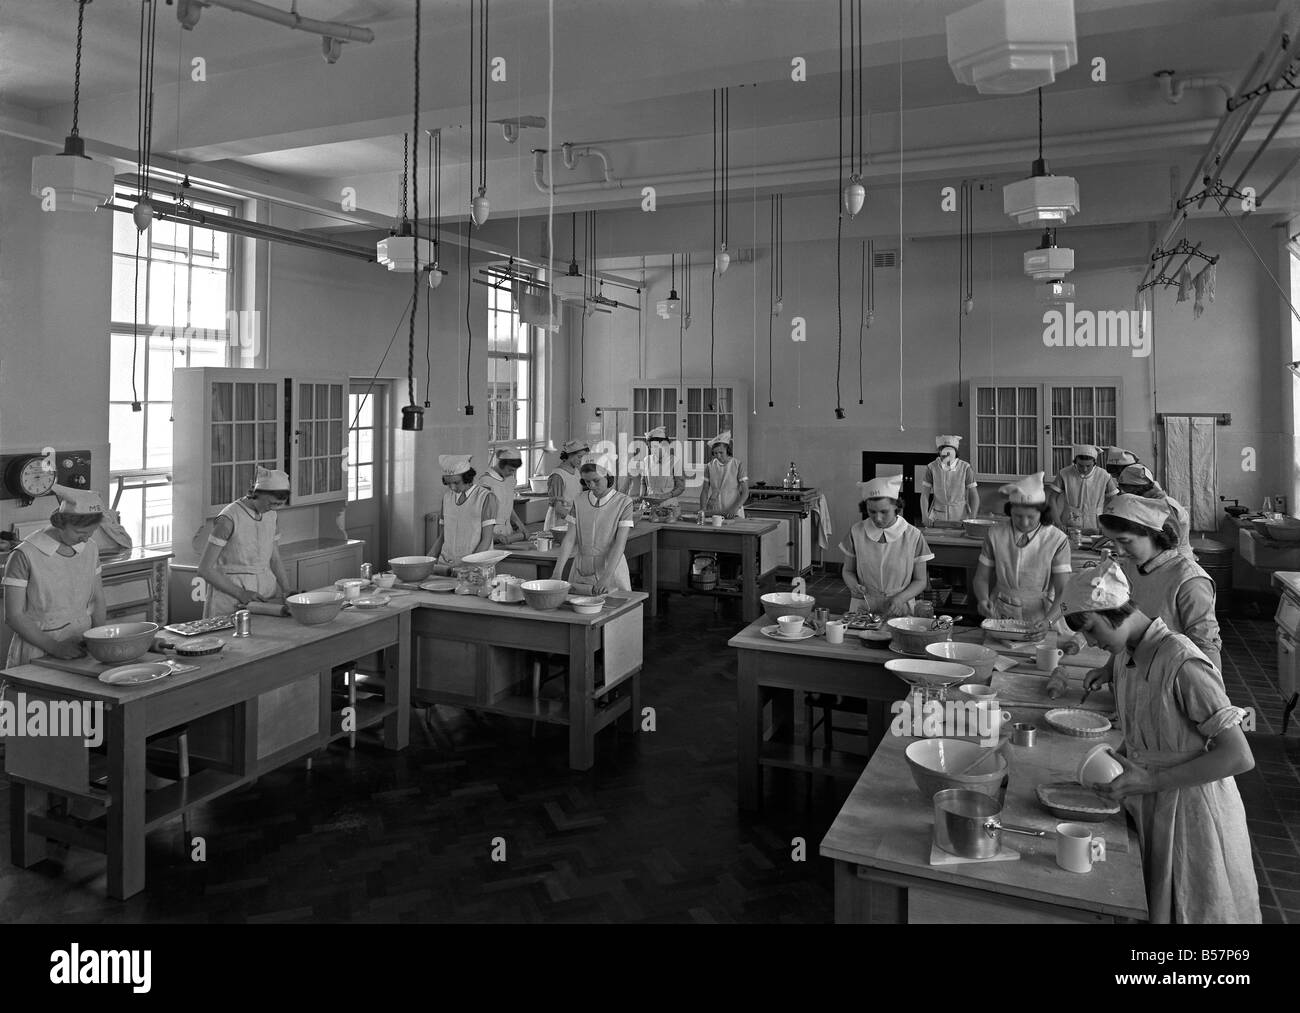 Domestic science class for girls in the 1950s at a secondary school in Leicester, England, c. 1955 Stock Photo